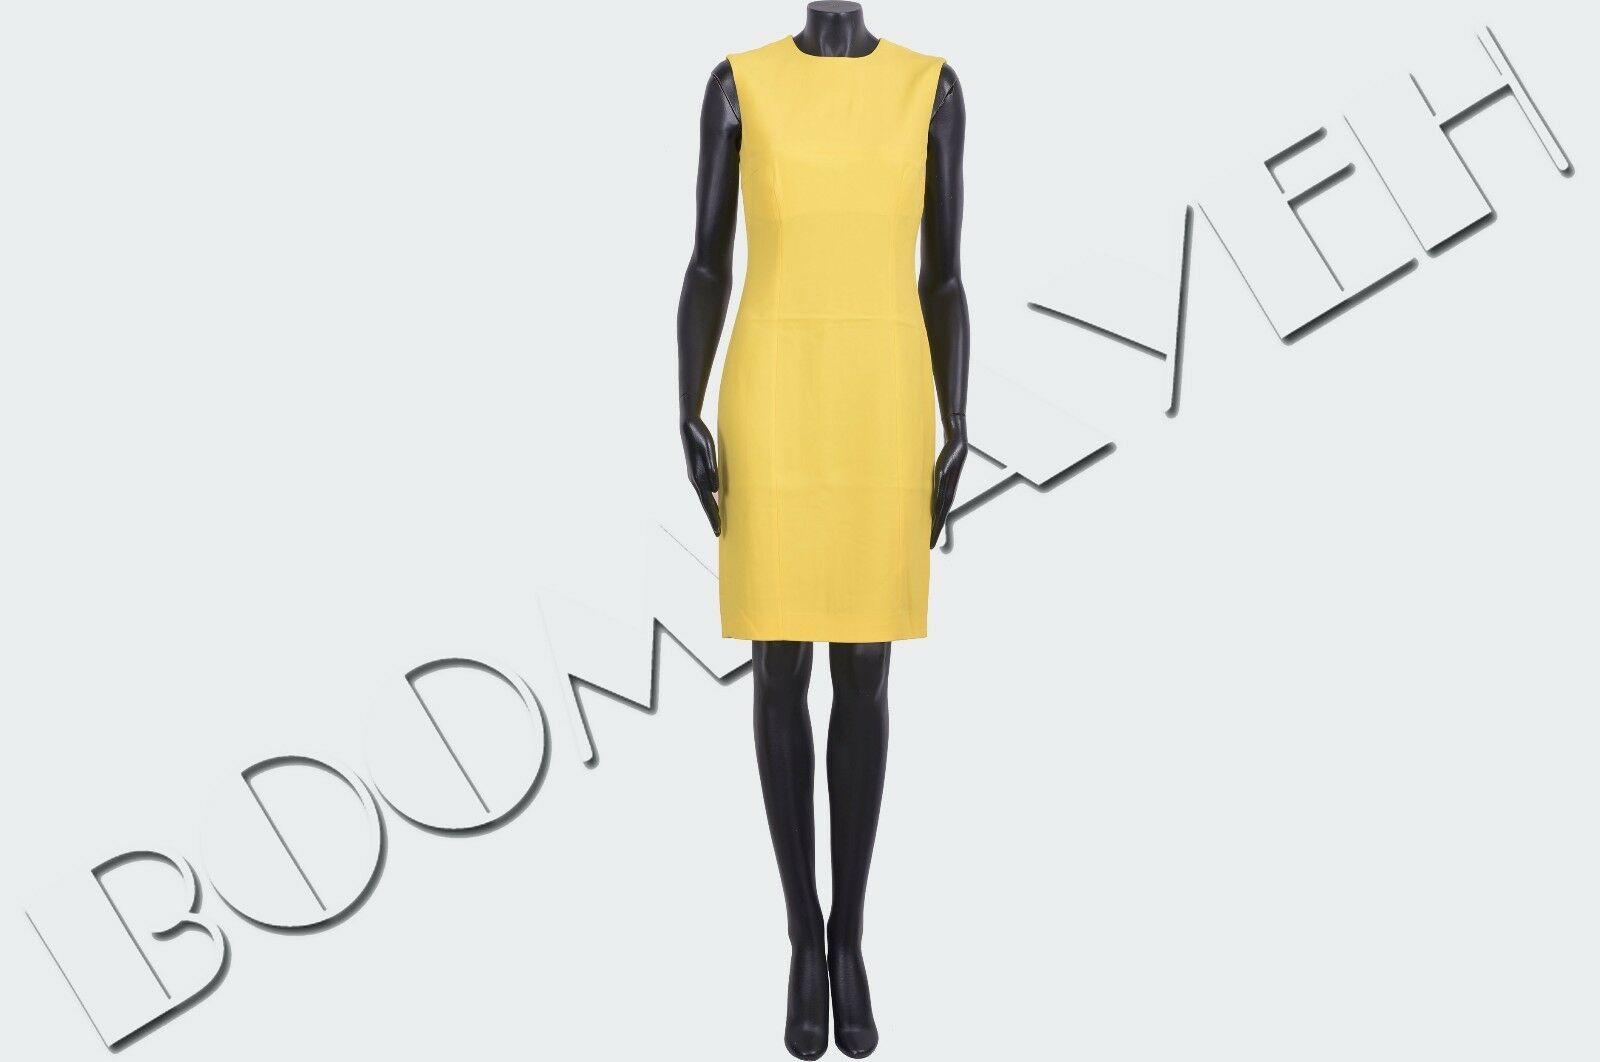 DSQUARED 795  Authentic Authentic Authentic New Yellow Viscose Stretch Cady Dress sz 40 1d49d8